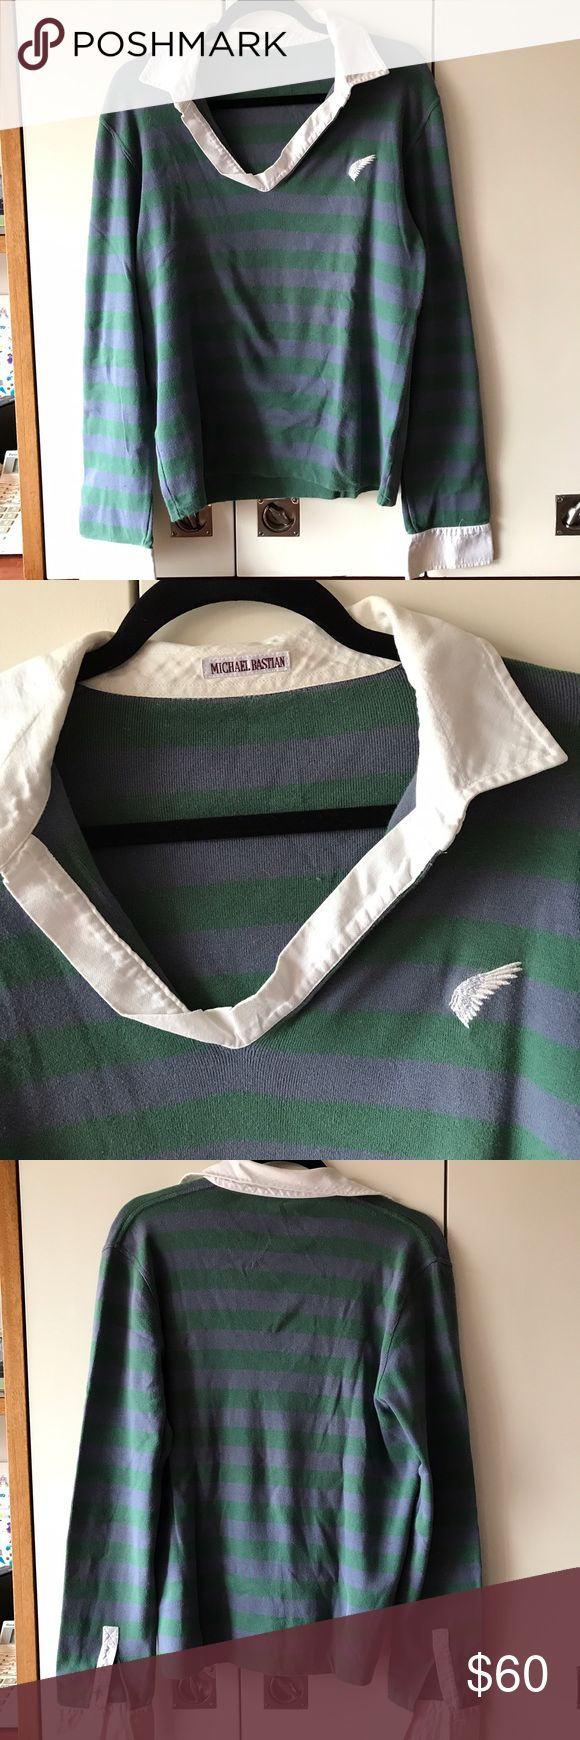 Michael Bastian V-neck long sleeve shirt 100% cotton. Previously worn/ pretty good condition. Size 52-medium Michael Bastian Shirts Tees - Long Sleeve